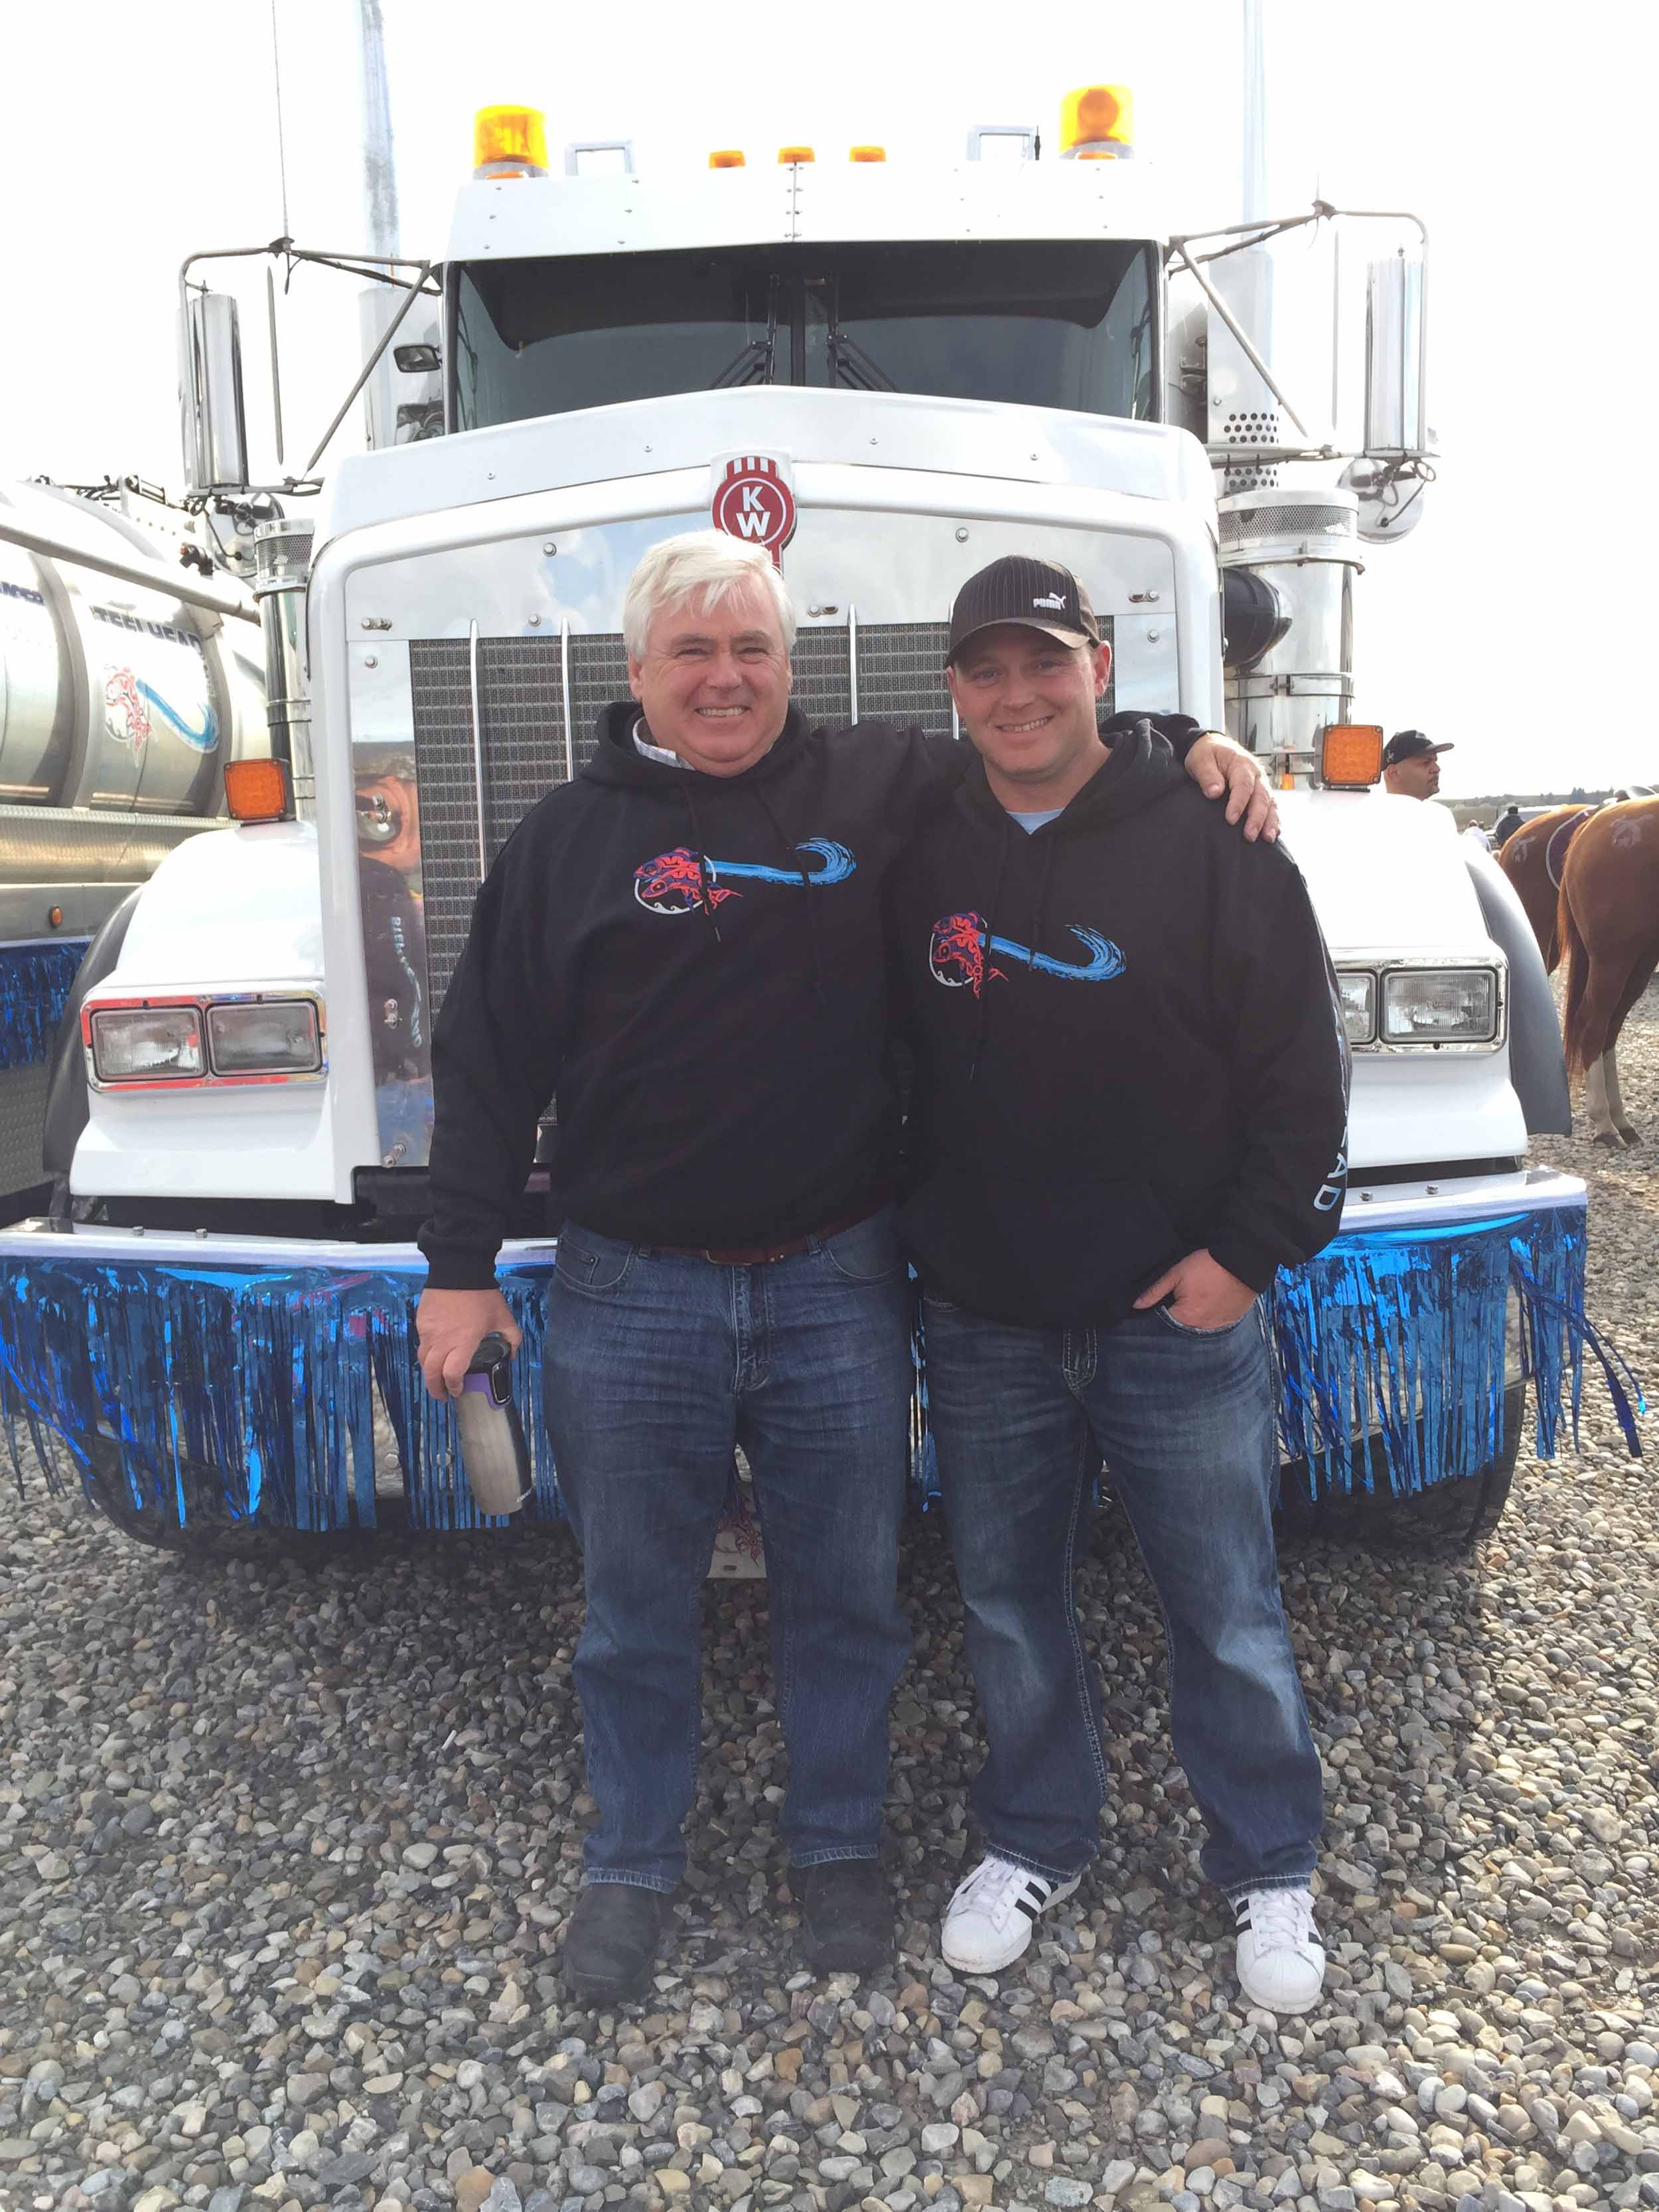 Steelhead Ventures owners at Cochrane Parade